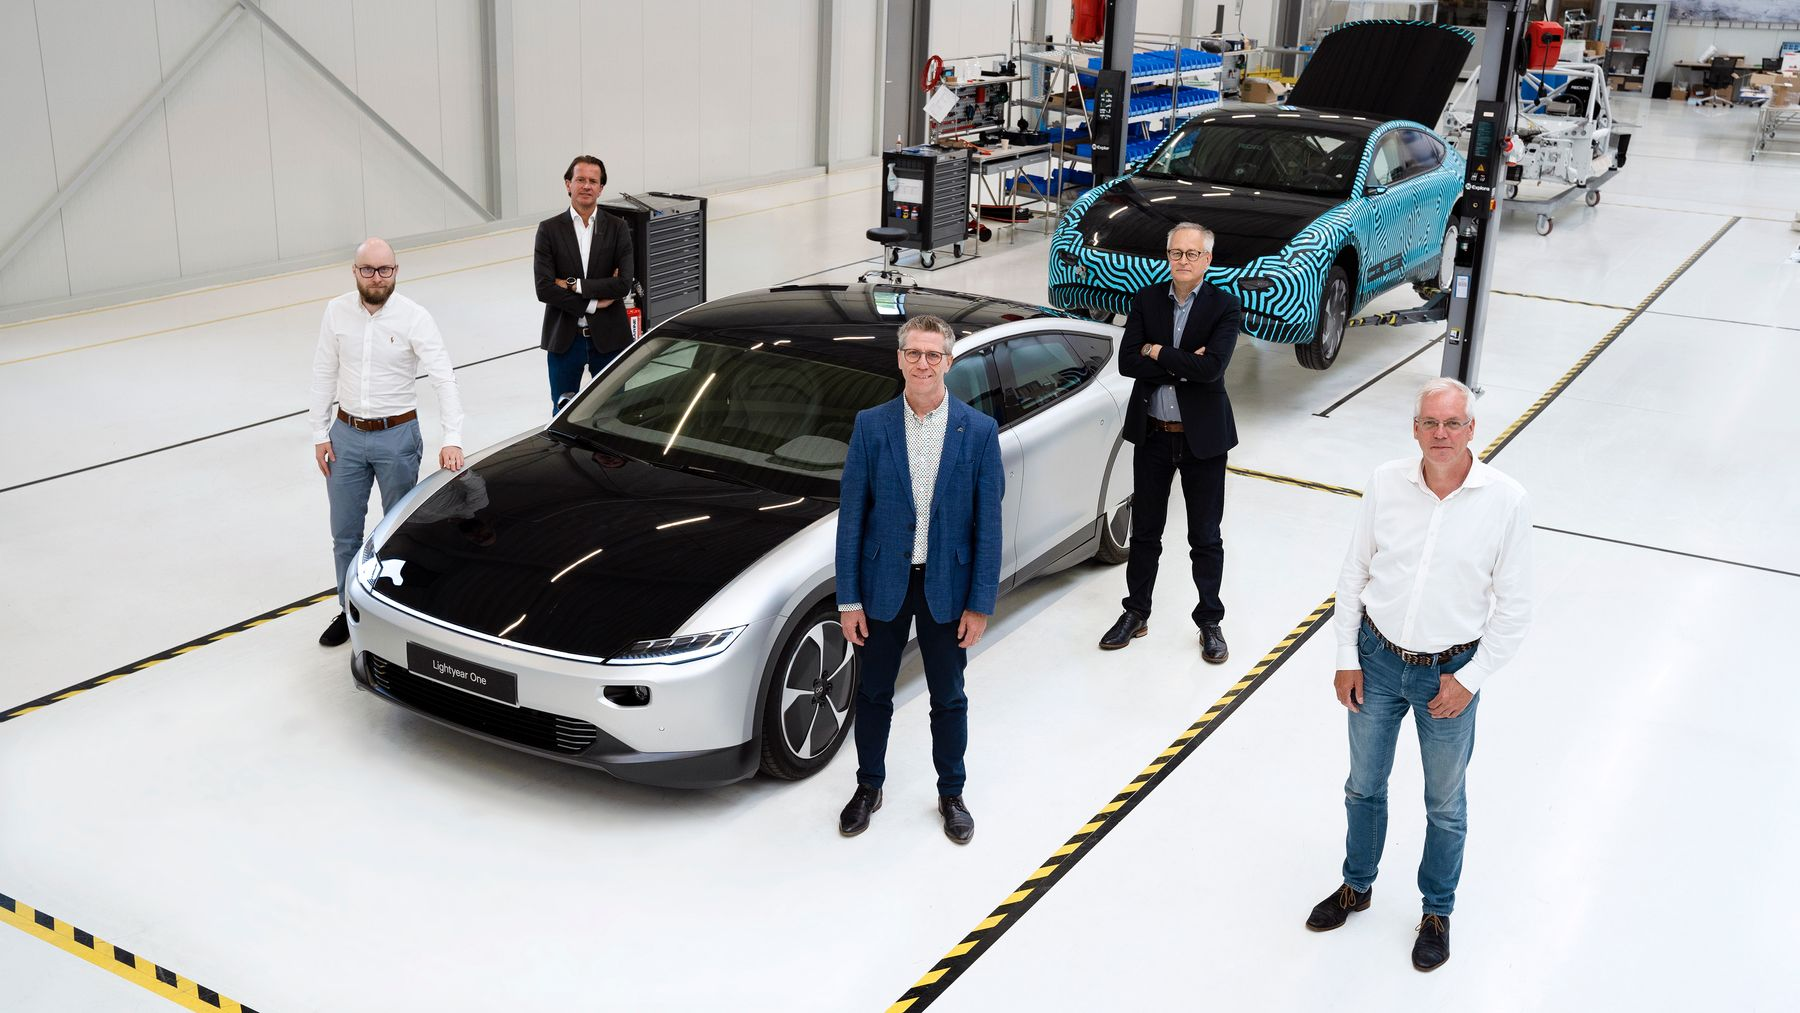 Production partner for Lightyear One selected: Valmet Automotive